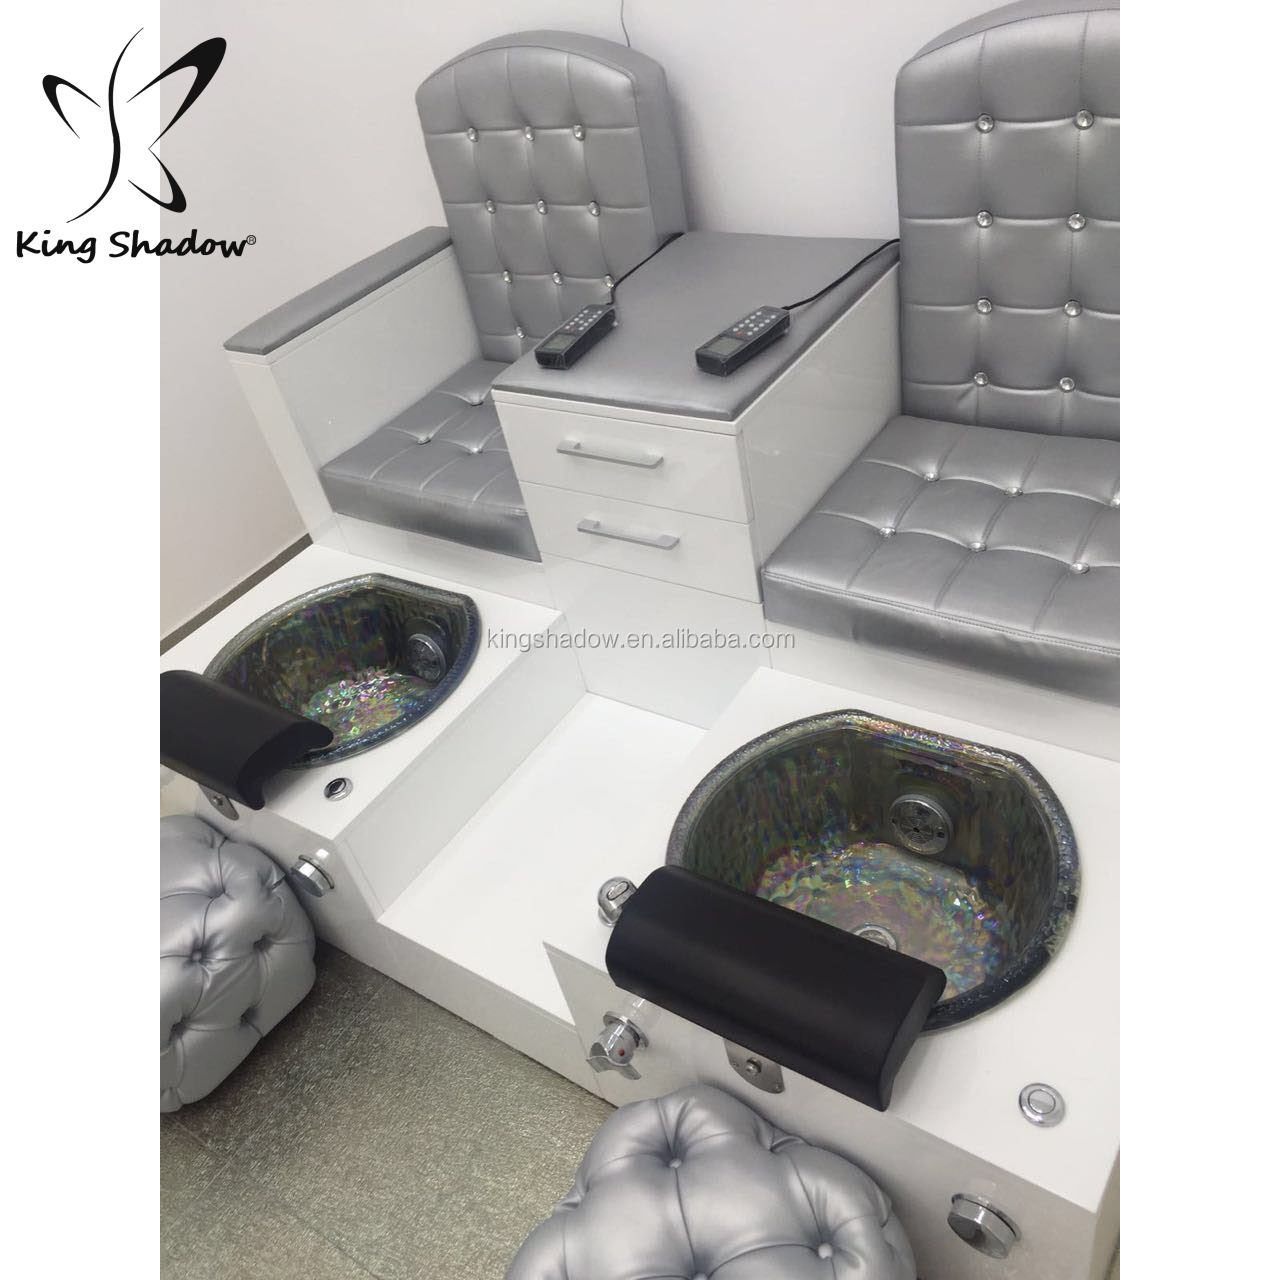 Used Pedicure Chair Alibaba >> Kingshadow Cheap Nail Spa Chair Used Nail Salon Furniture Pedicure